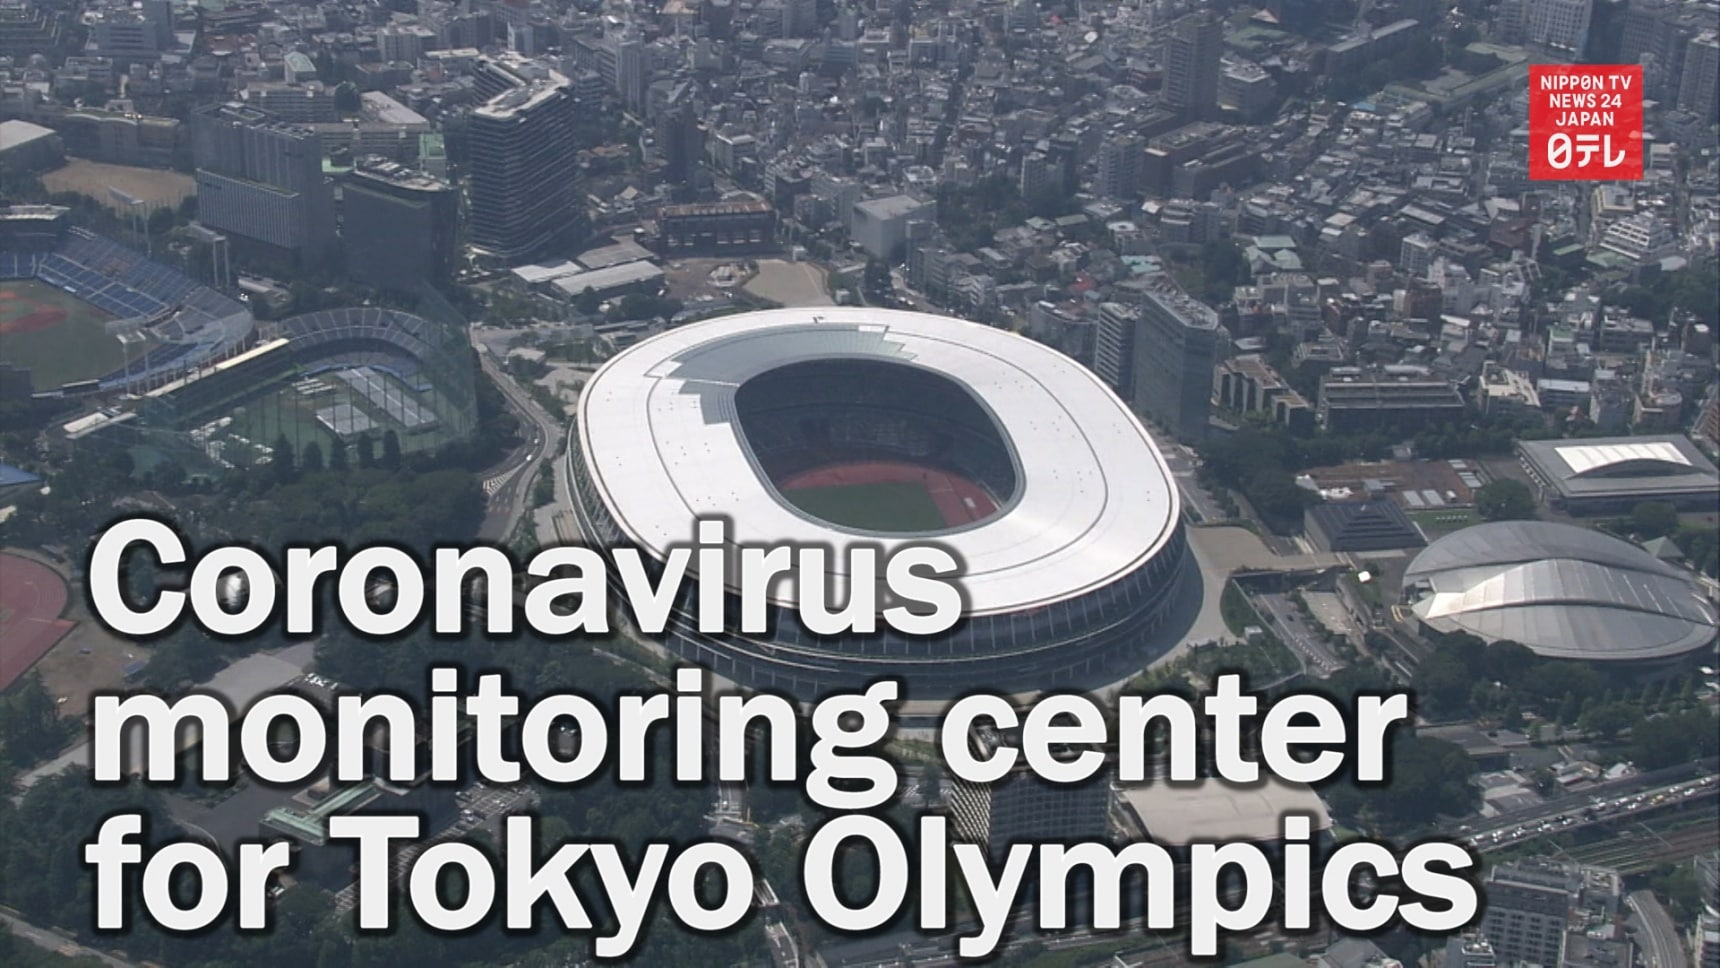 2020 Olympics Coronavirus Monitoring Center